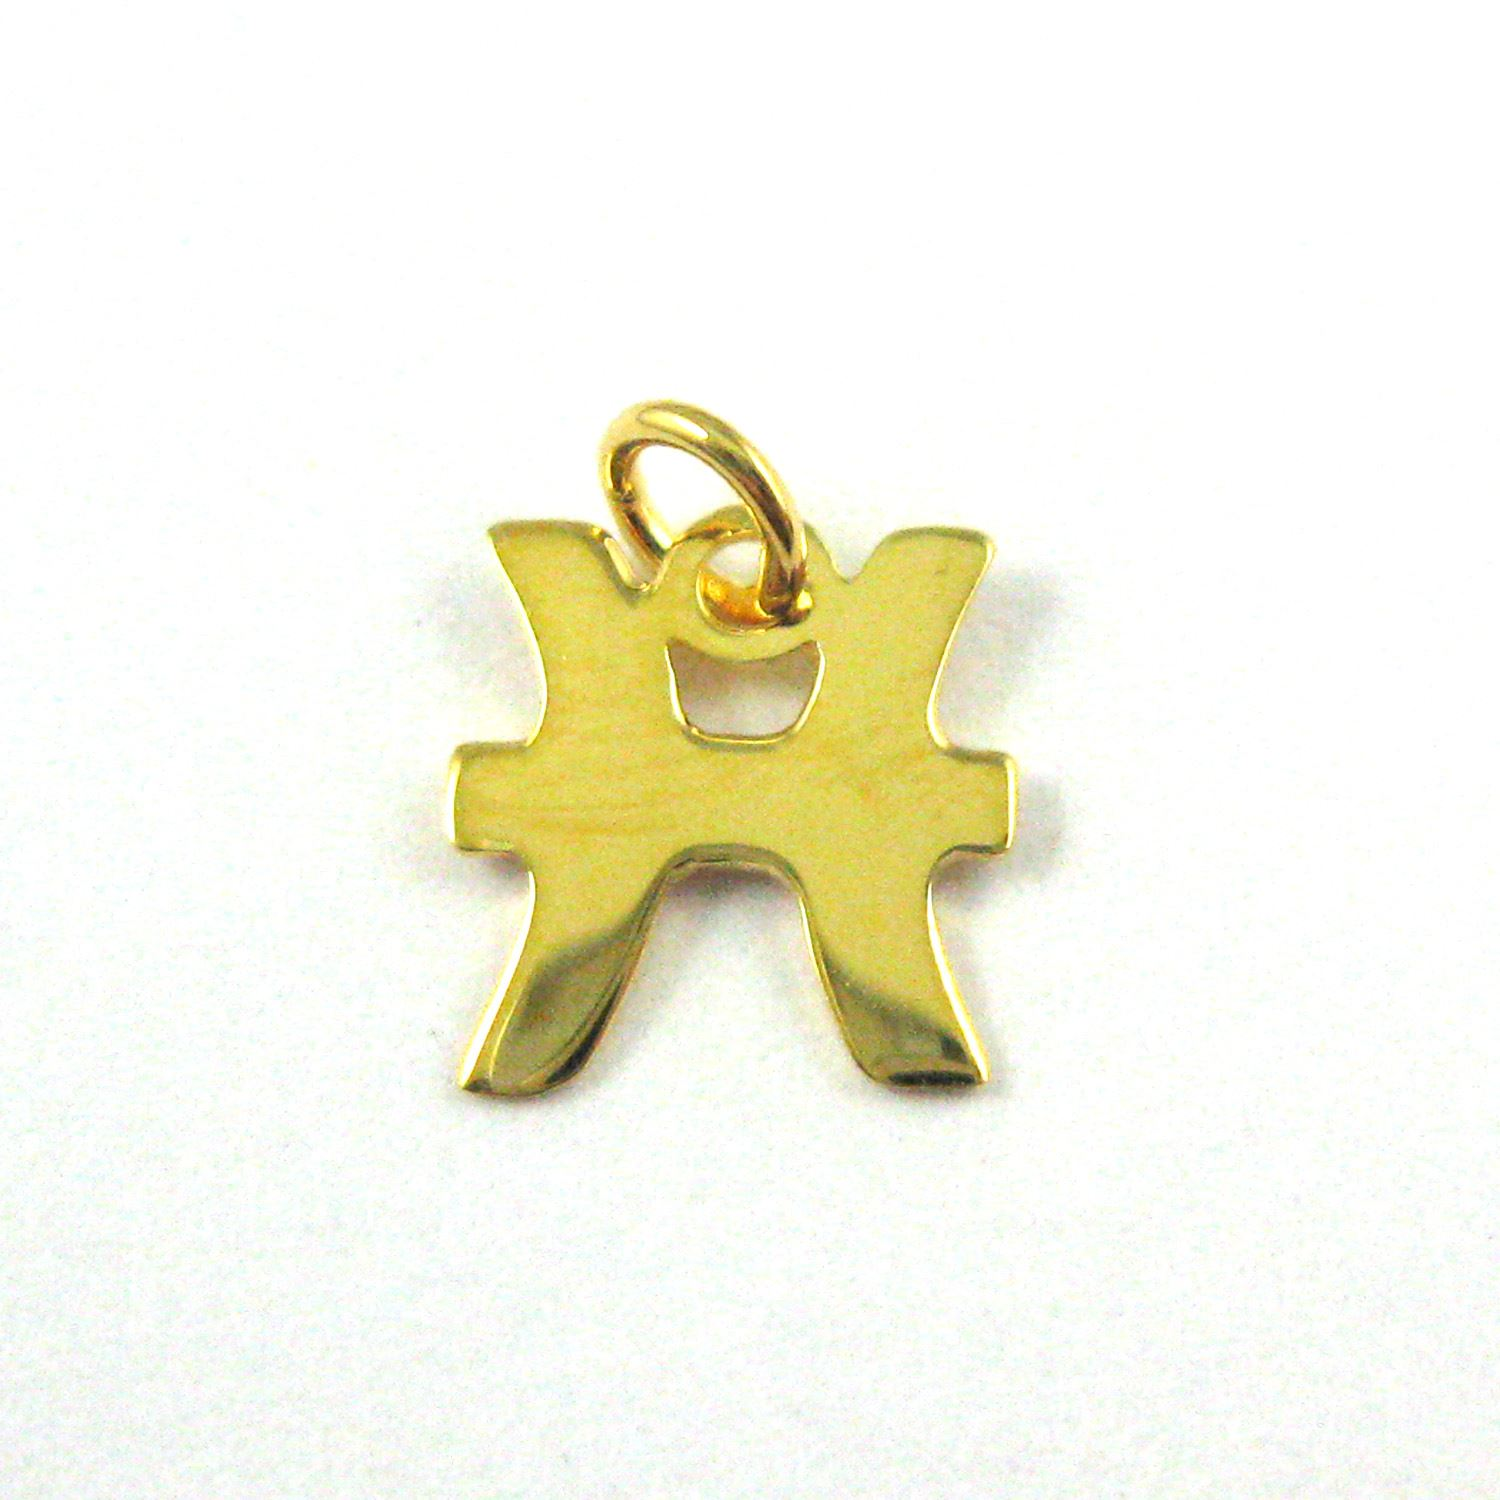 22K Gold plated Sterling Silver Horoscope Charms, High Polish Vermeil Zodiac Sign Charm